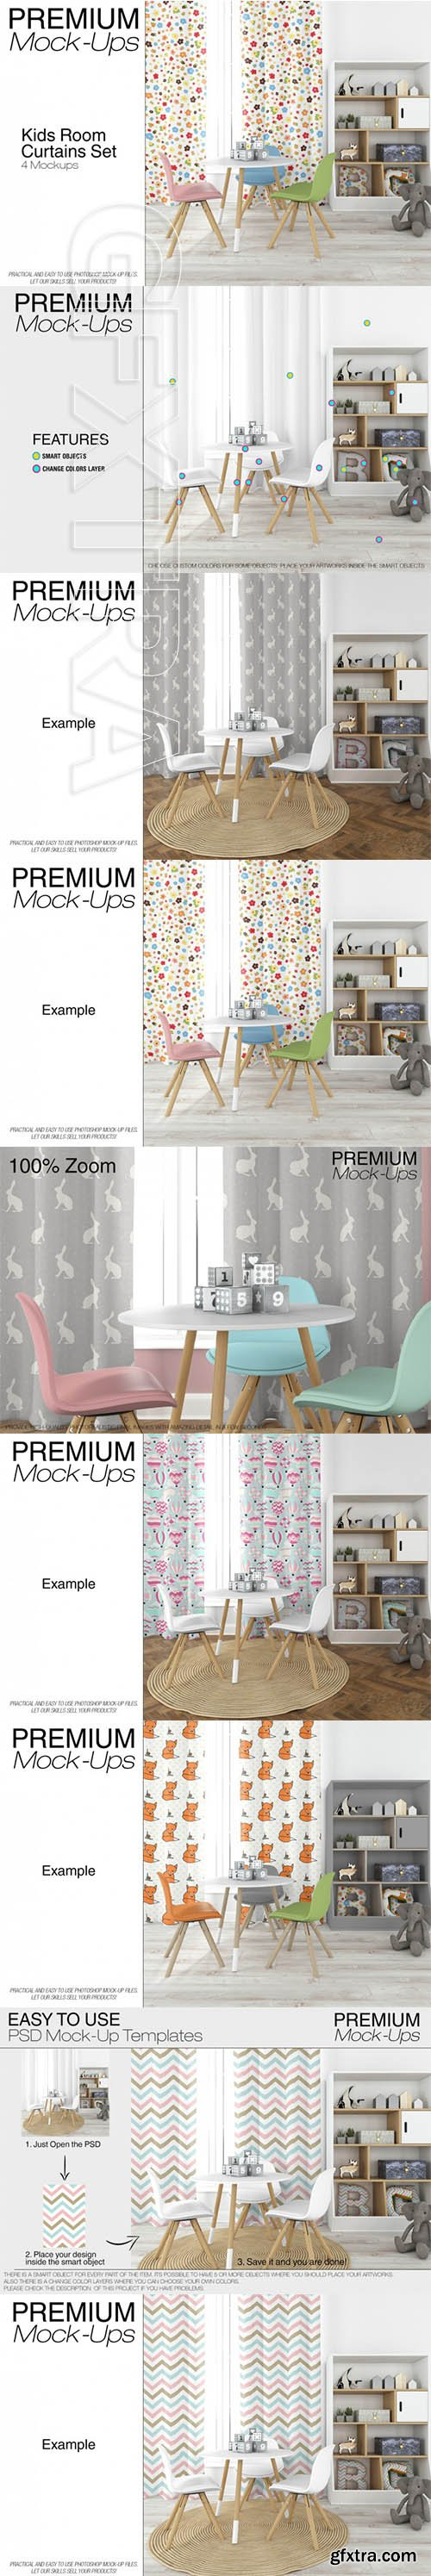 Curtains in Nursery Mockup Set